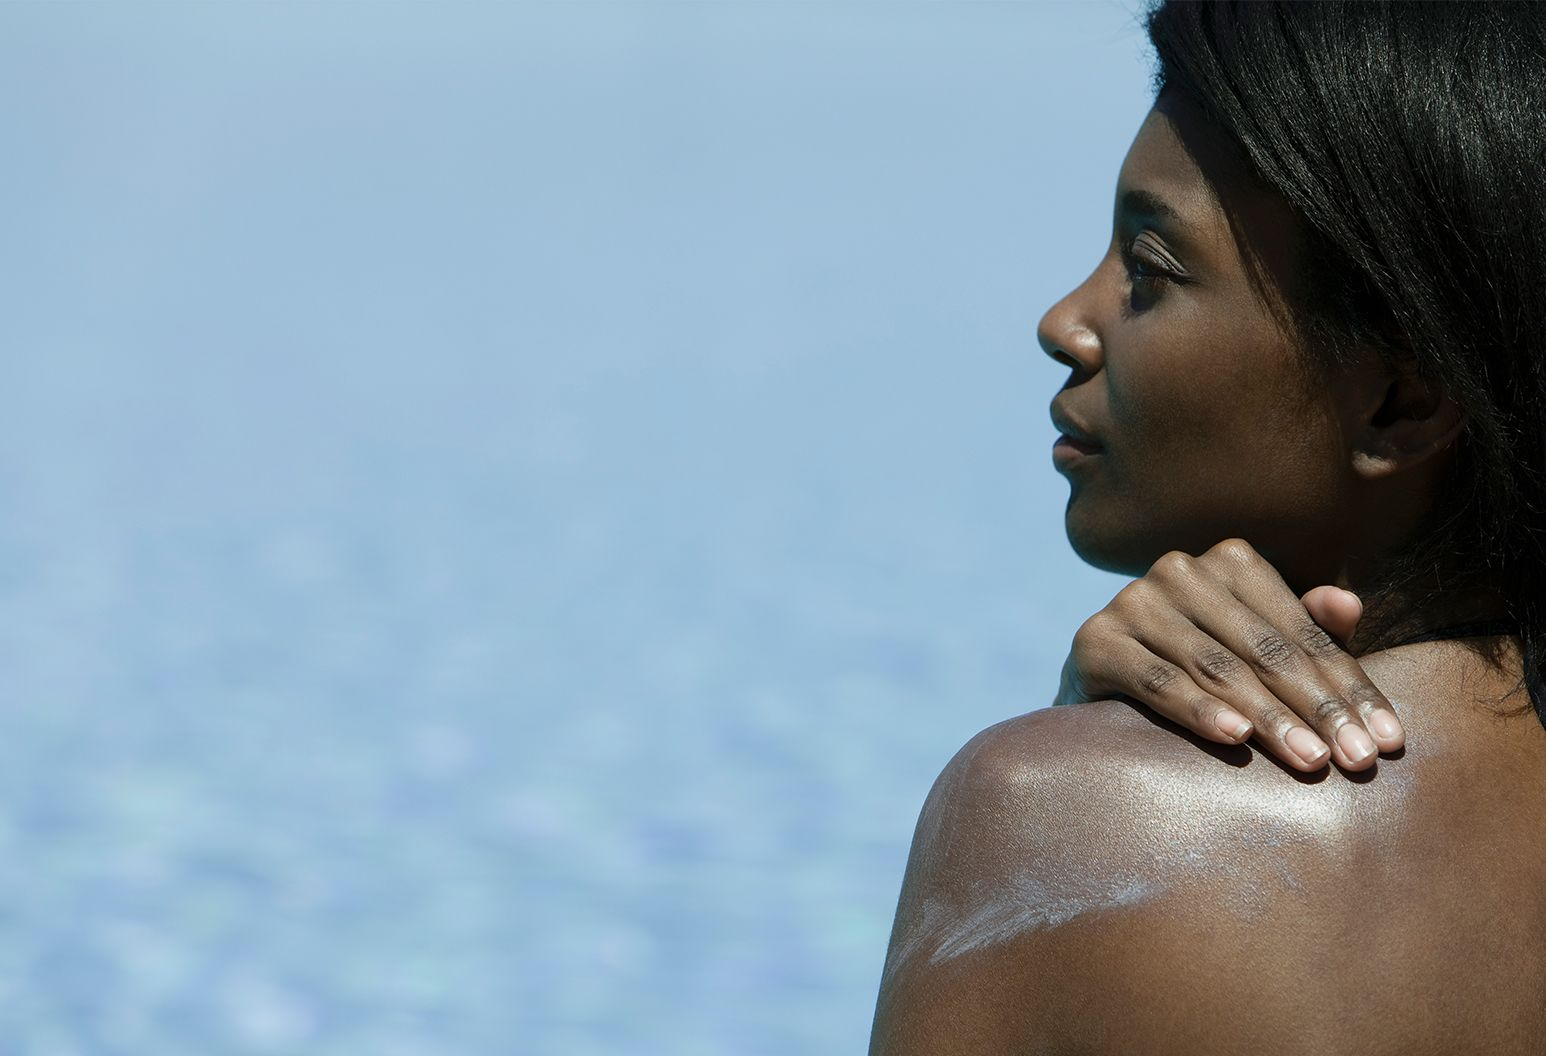 Woman sitting on beach with sunblock on her back. For Dear Doctor article on The Well.